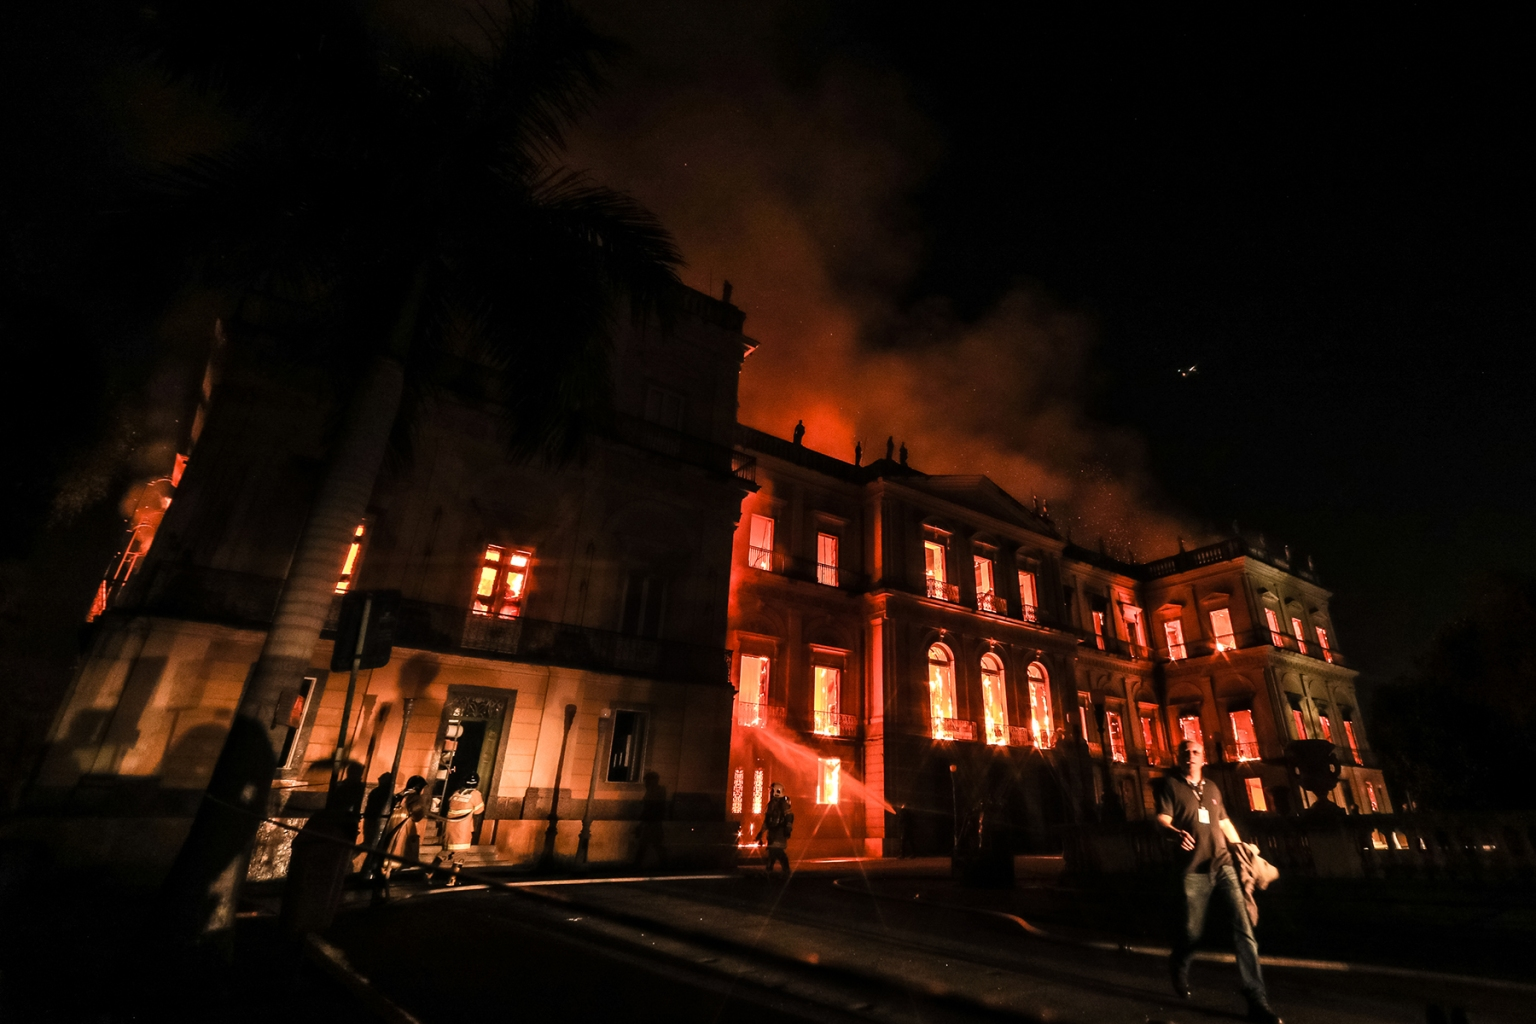 A fire destroys the National Museum of Brazil in Rio de Janeiro on Sept. 2, 2018. Founded in 1818 it housed several landmark collections including Egyptian artifacts and the oldest human fossil found in Brazil. The bulk of its collection of more than 20 million items was destroyed or badly damaged. (Buda Mendes/Getty Images)